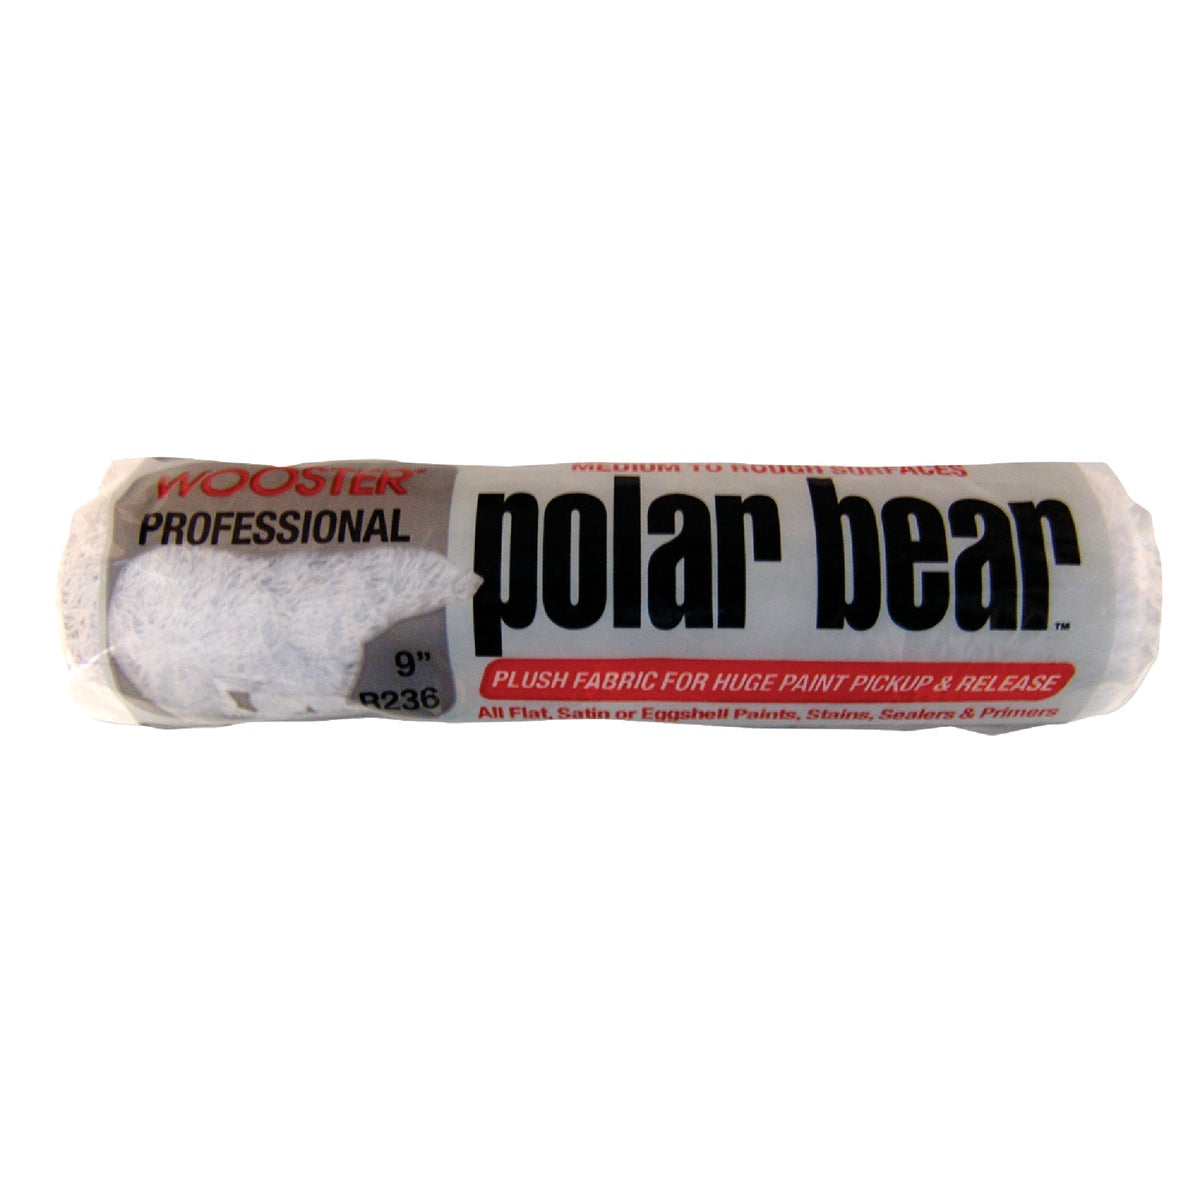 "9"" POLAR BEAR COVER - R236-9 by Wooster Brush Co"